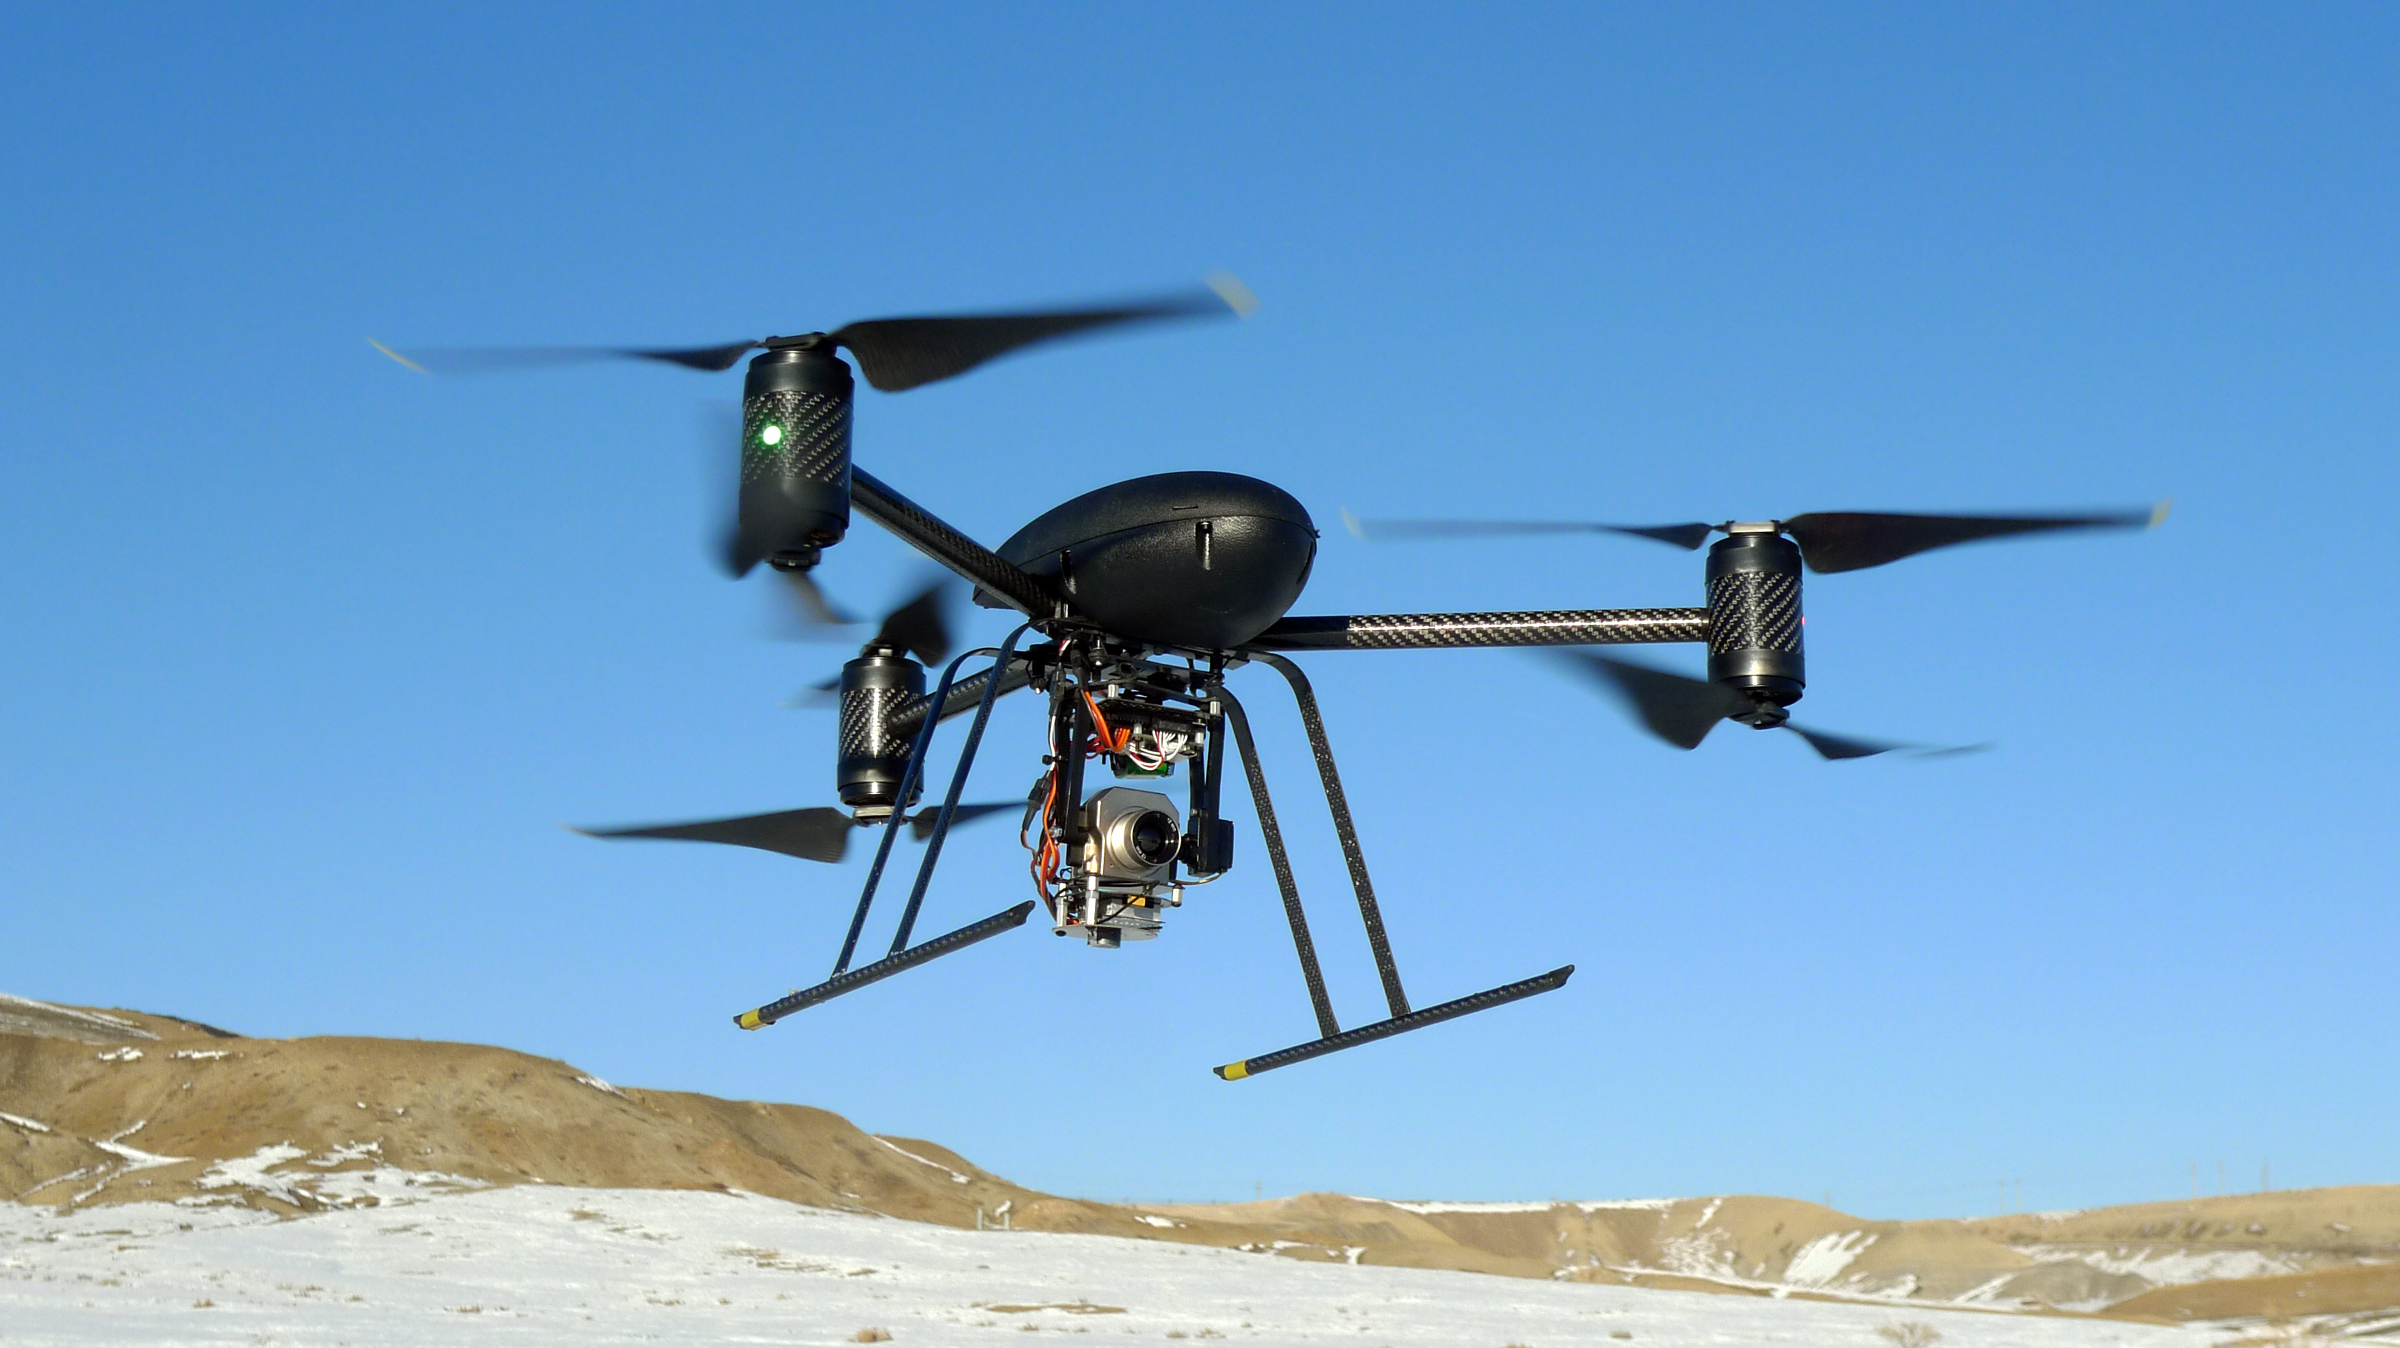 In this Jan. 8, 2009, photo provided by the Mesa County Sheriff's Department, a small Draganflyer X6 drone is photographed during a test flight in Mesa County, Colo., with a Forward Looking Infared payload.